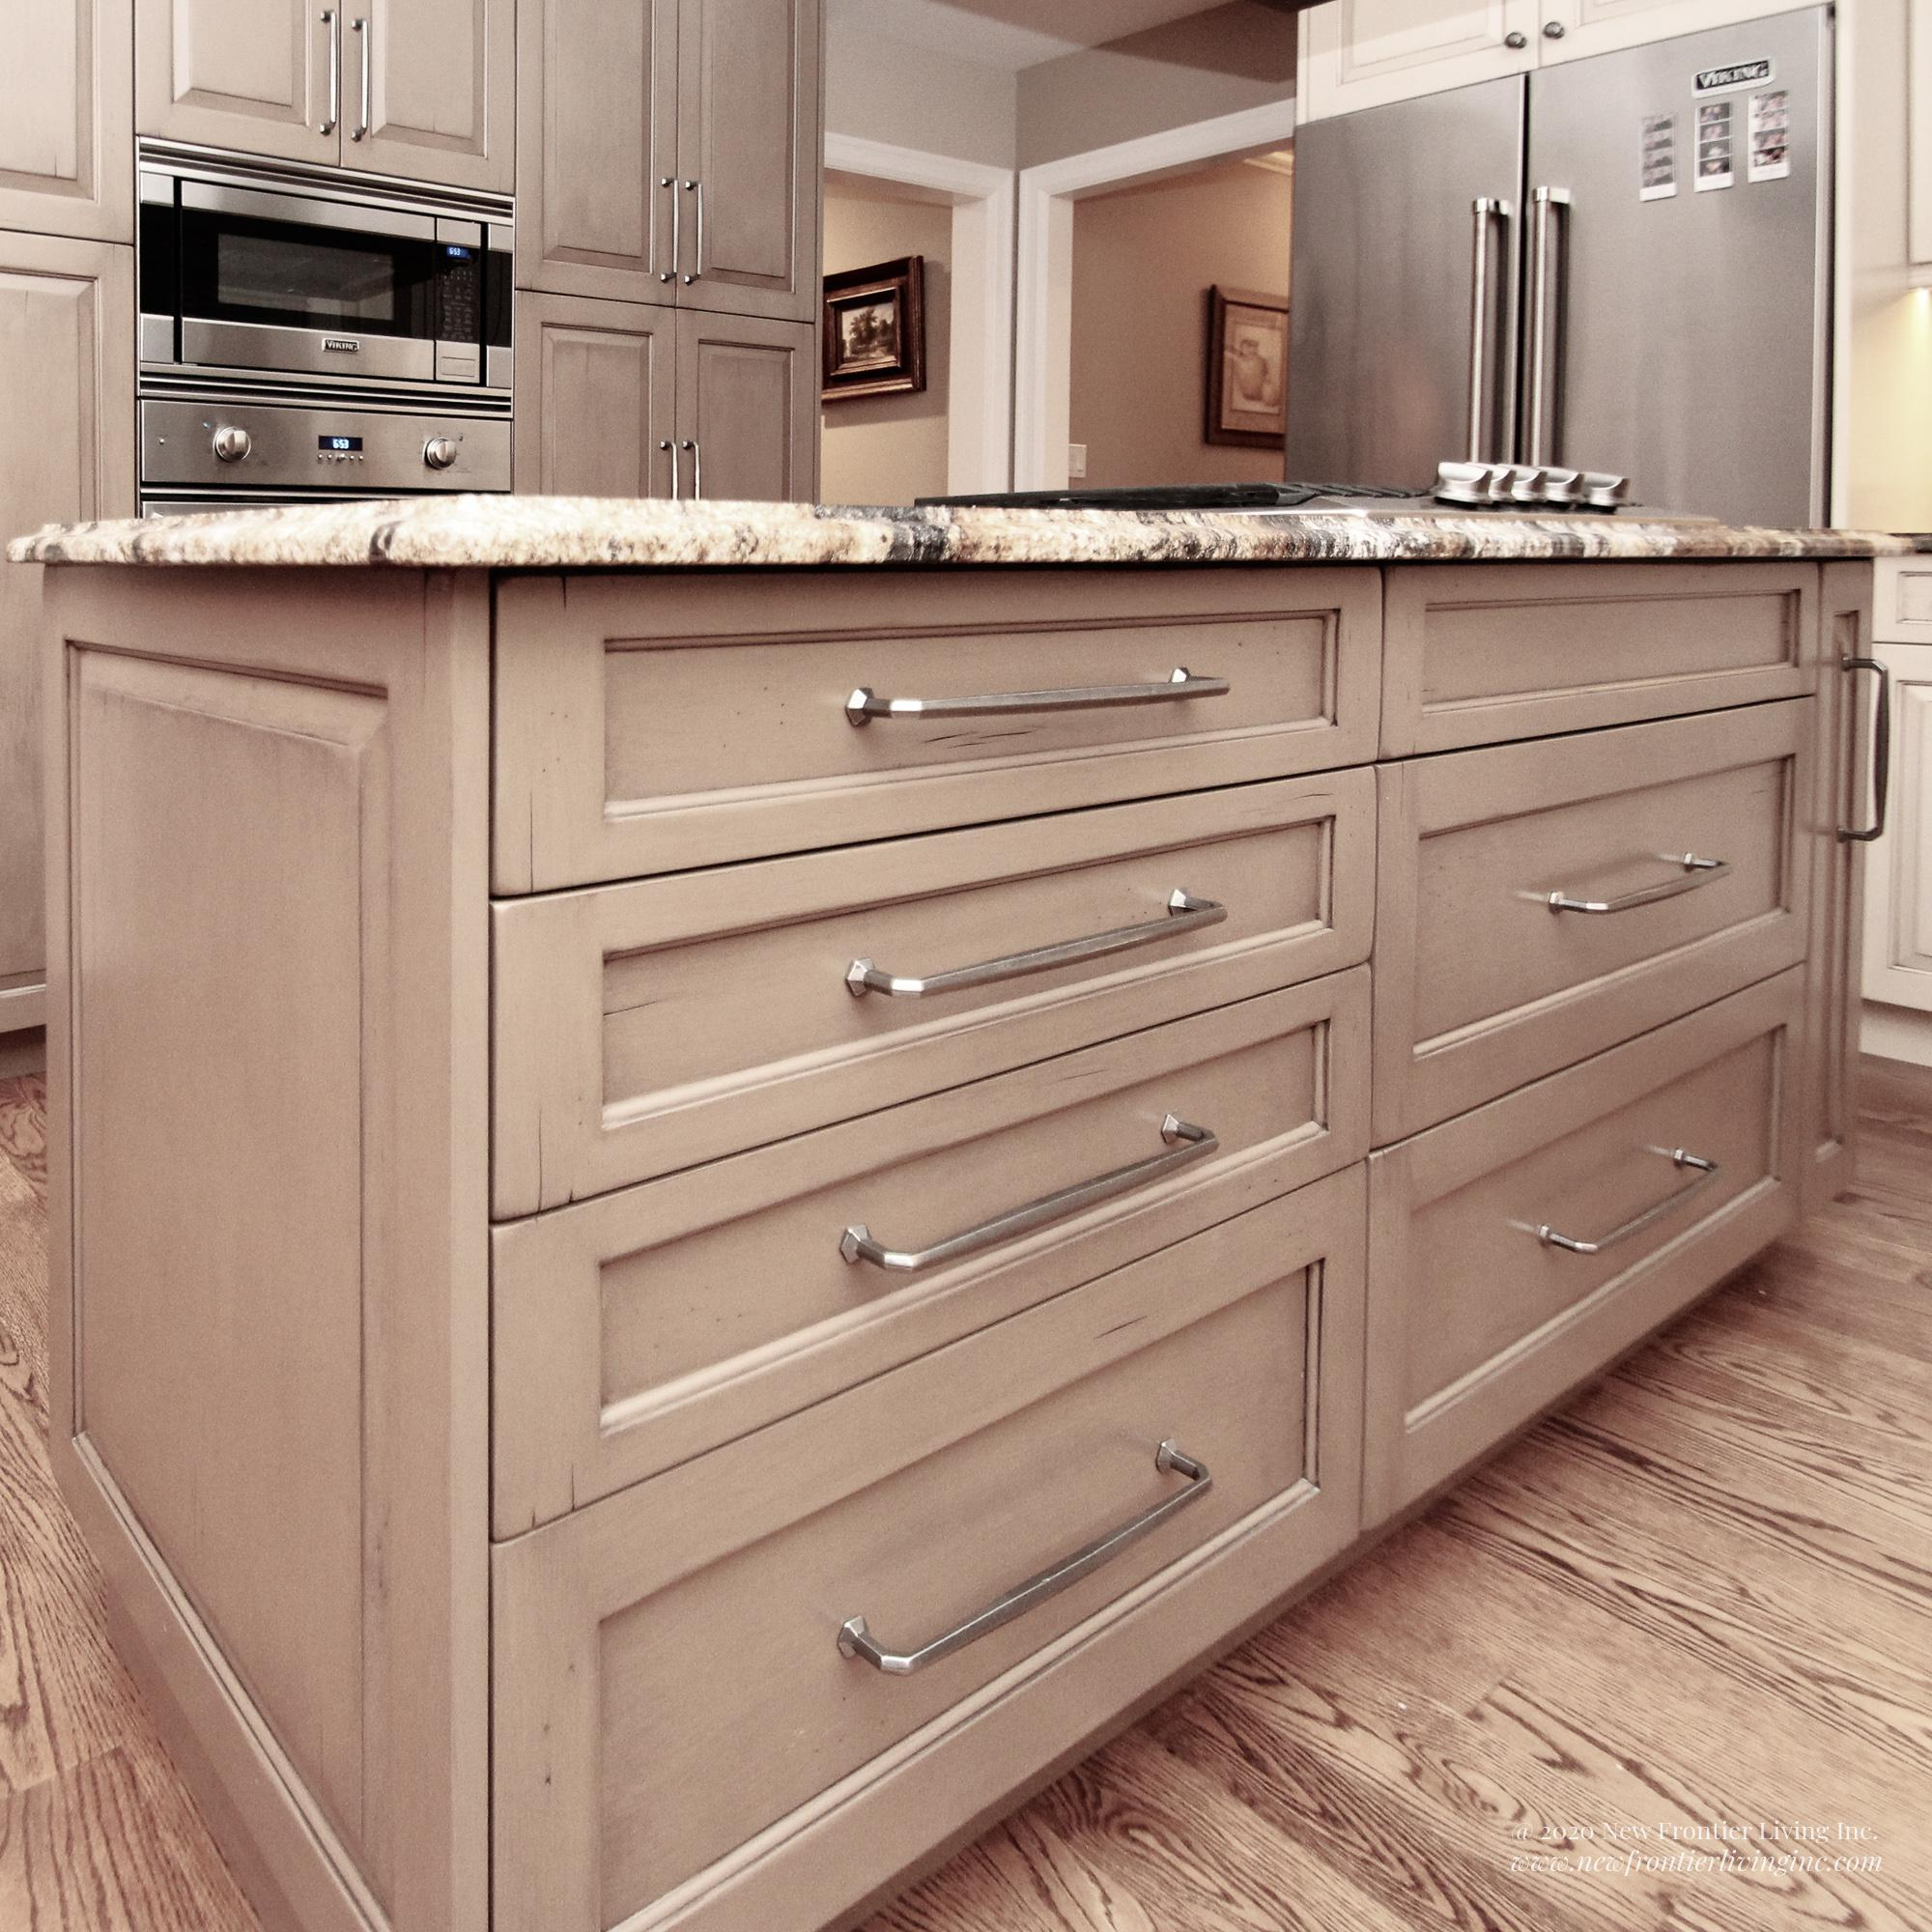 Custom light brown kitchen with island and cabinets, oven and fridge in the back